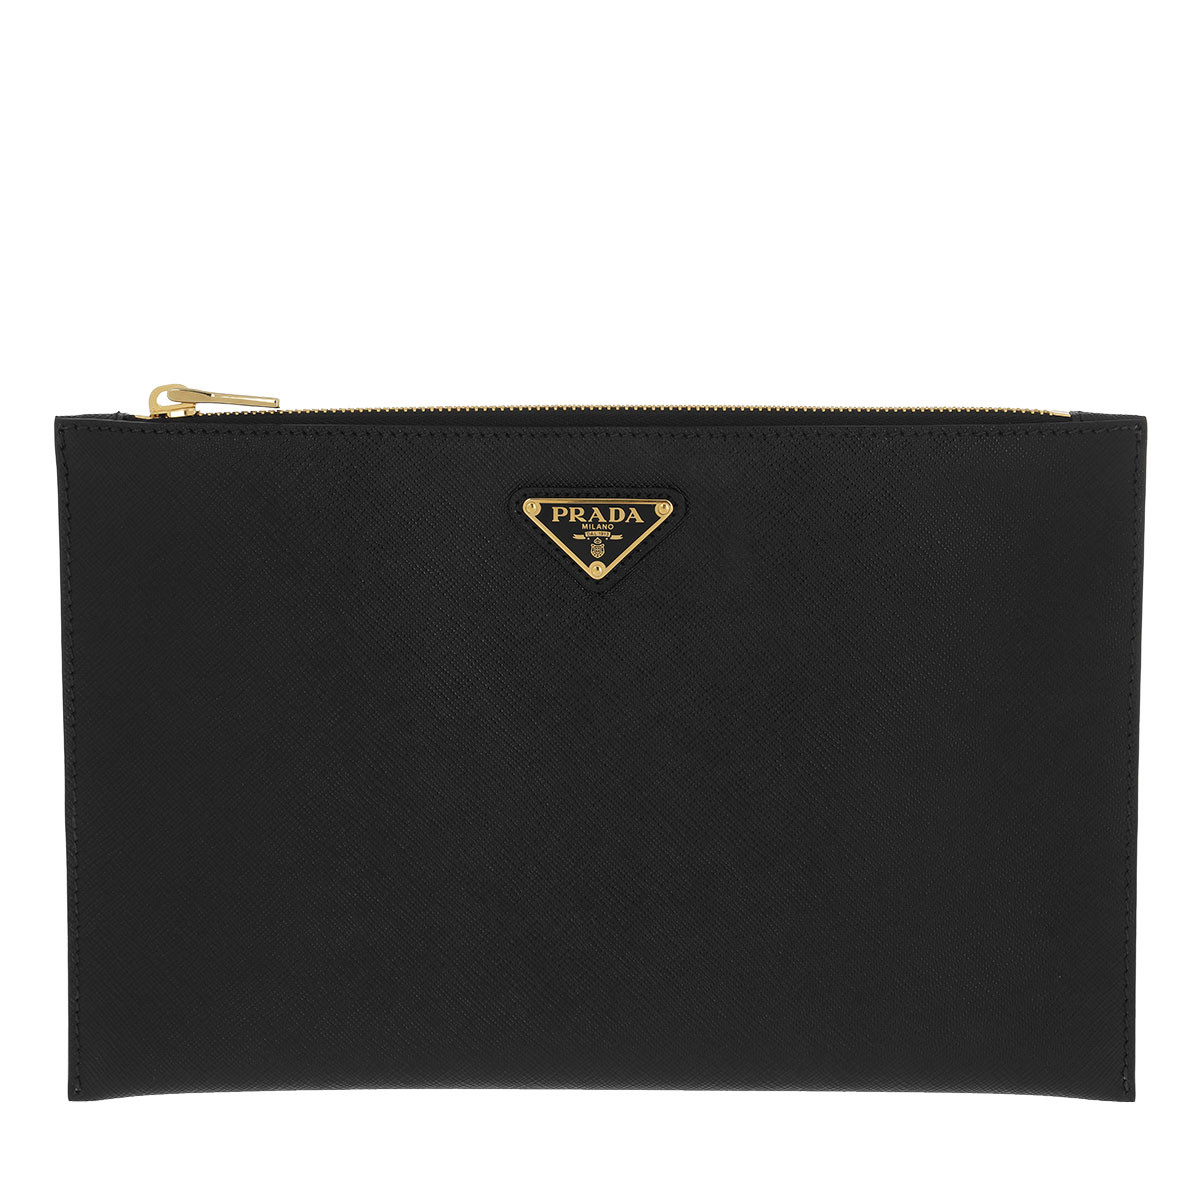 Prada Clutch - Small Clutch Saffiano Leather Black - in schwarz - für Damen